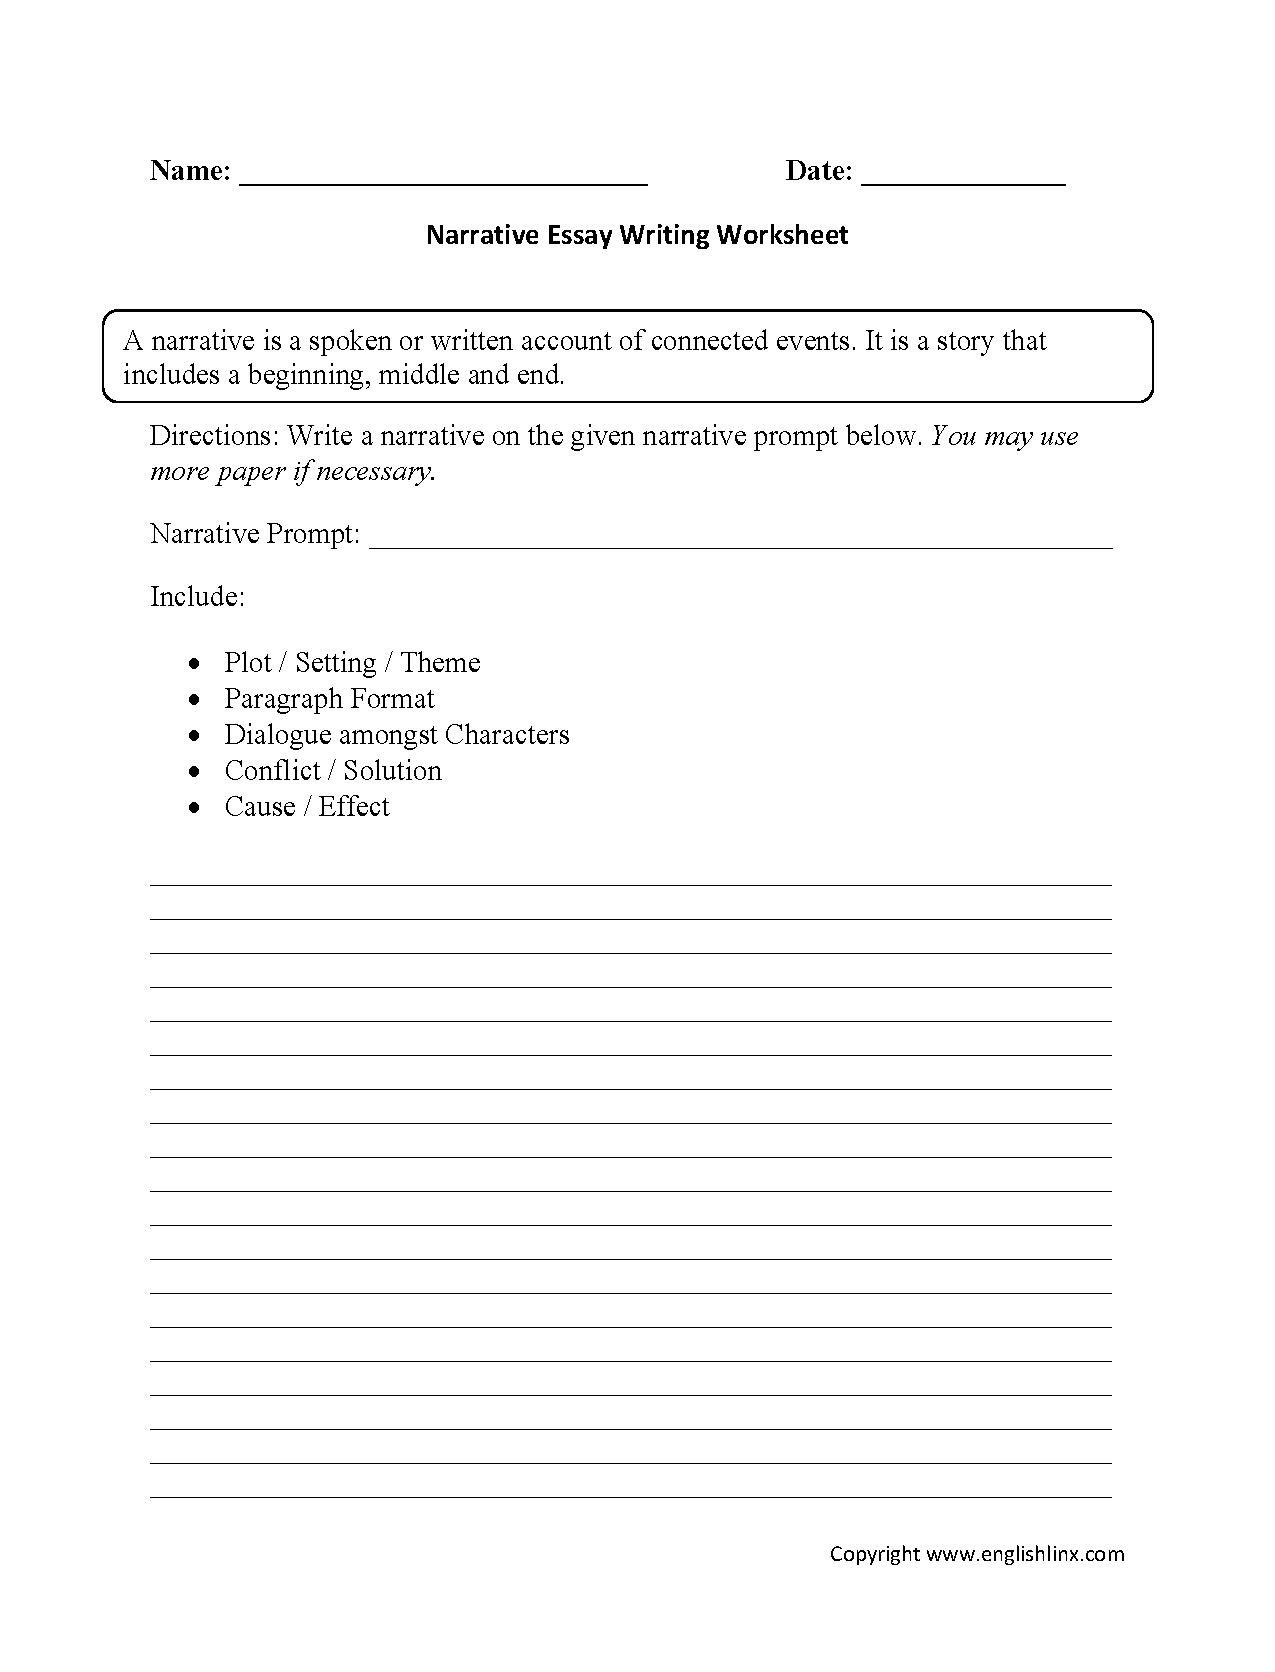 10 Best Images Of Dialogue Worksheet 4th Grade